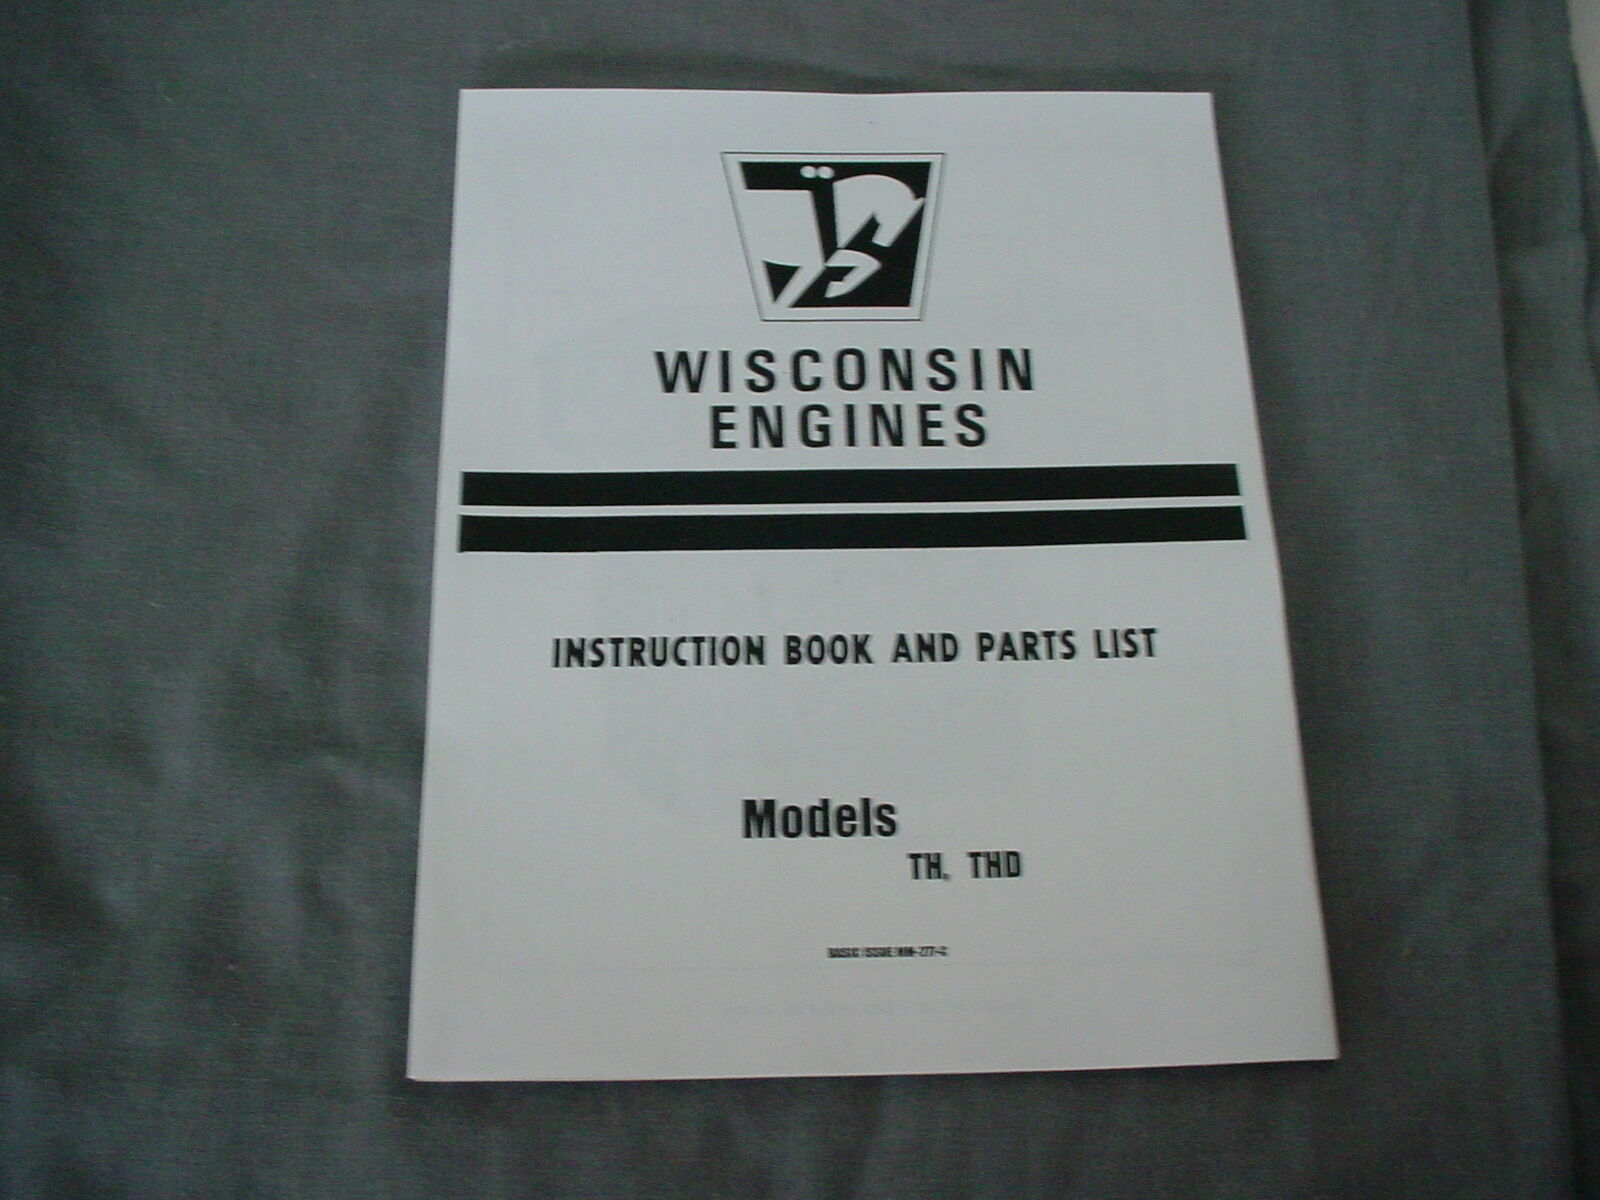 manuals technical wisconsin tjd thd th